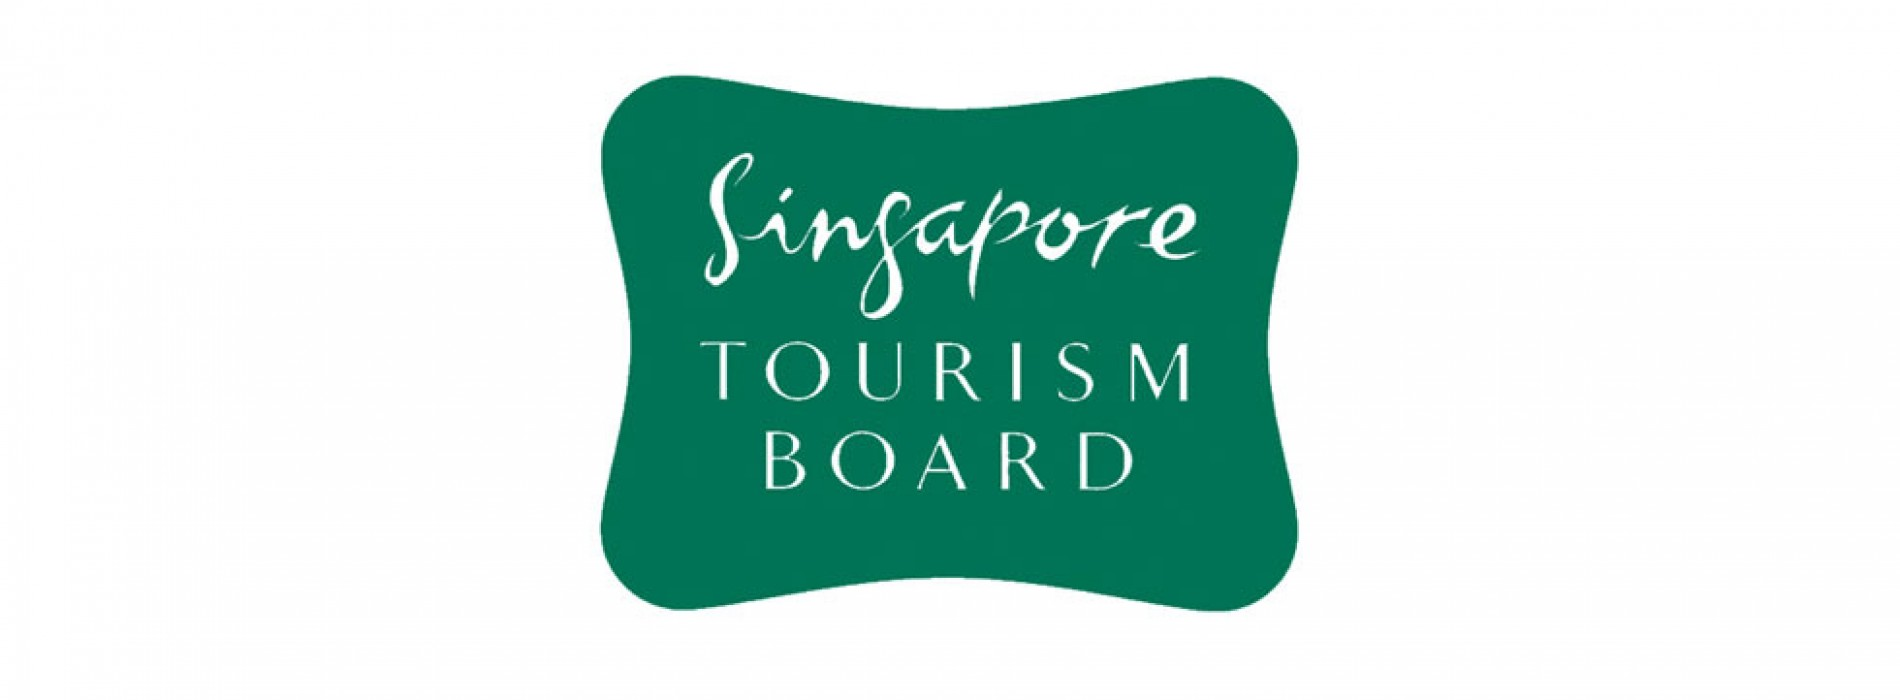 Singapore welcomes 1 million tourist arrivals from India